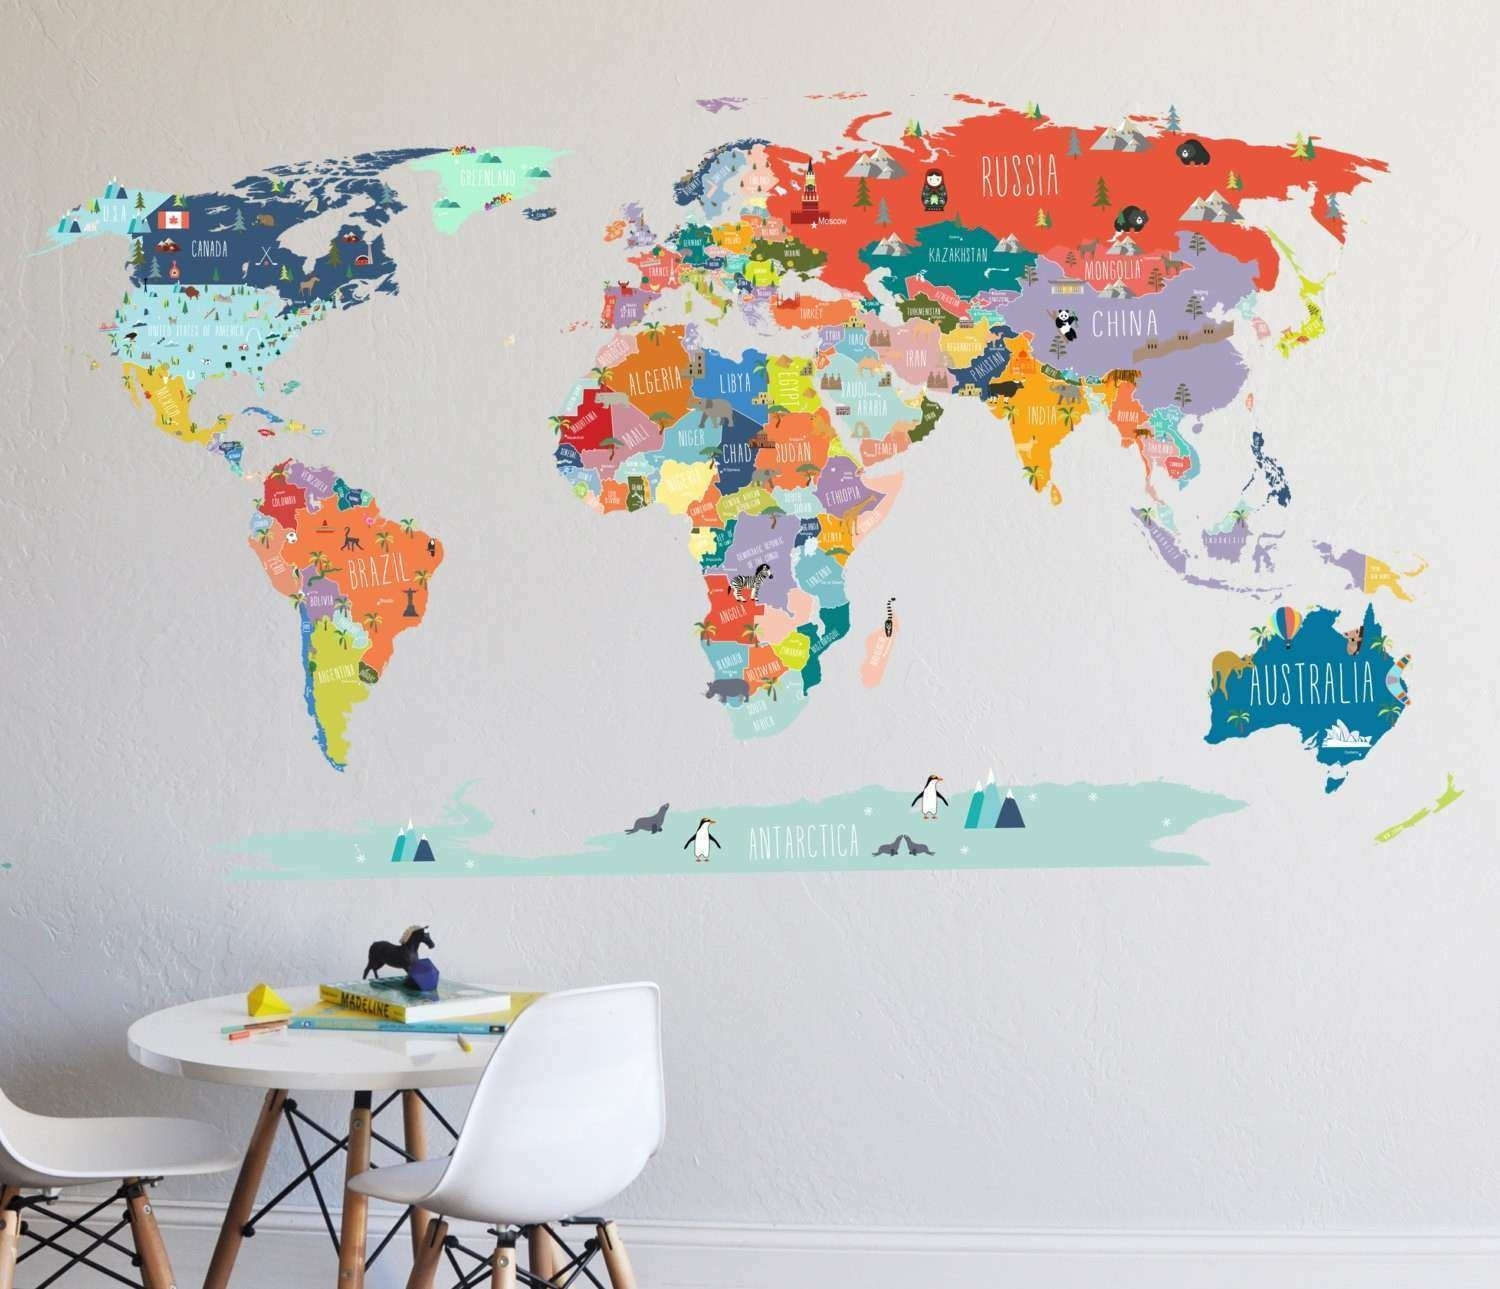 How To Print Vinyl Wall Decals Fresh Wall Decal World Map Intended For Vinyl Wall Art World Map (View 13 of 20)